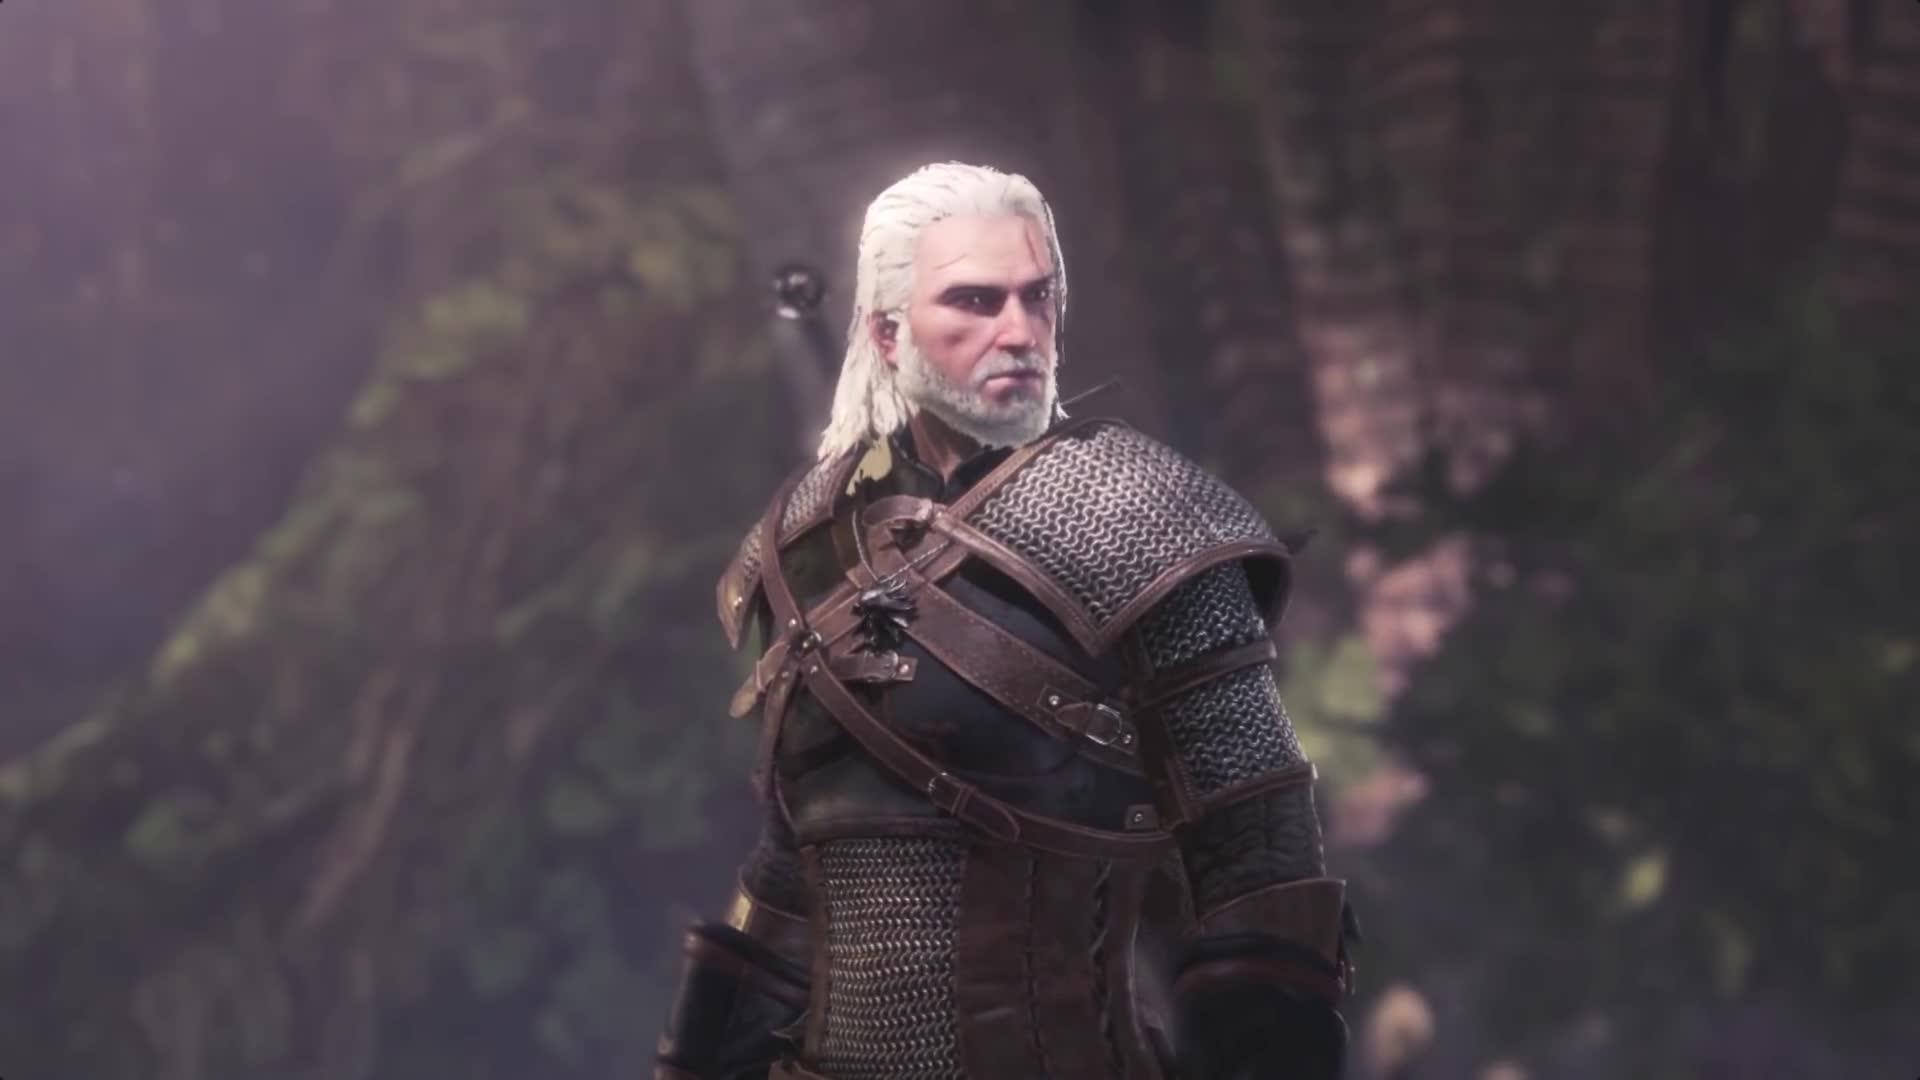 Cat, Cutscene, Gaming, Geralt, Geralt of Rivia, Gift, Meow, Monster Hunter, Monster Hunter Cutscene, Monster Hunter World, Palico, Palico Meowing, Palicoes, Sharing, Witcher, Witcher 3, kitties, mhw, mhw x witcher, mhw x witcher 3, Offering Geralt a Gift GIFs